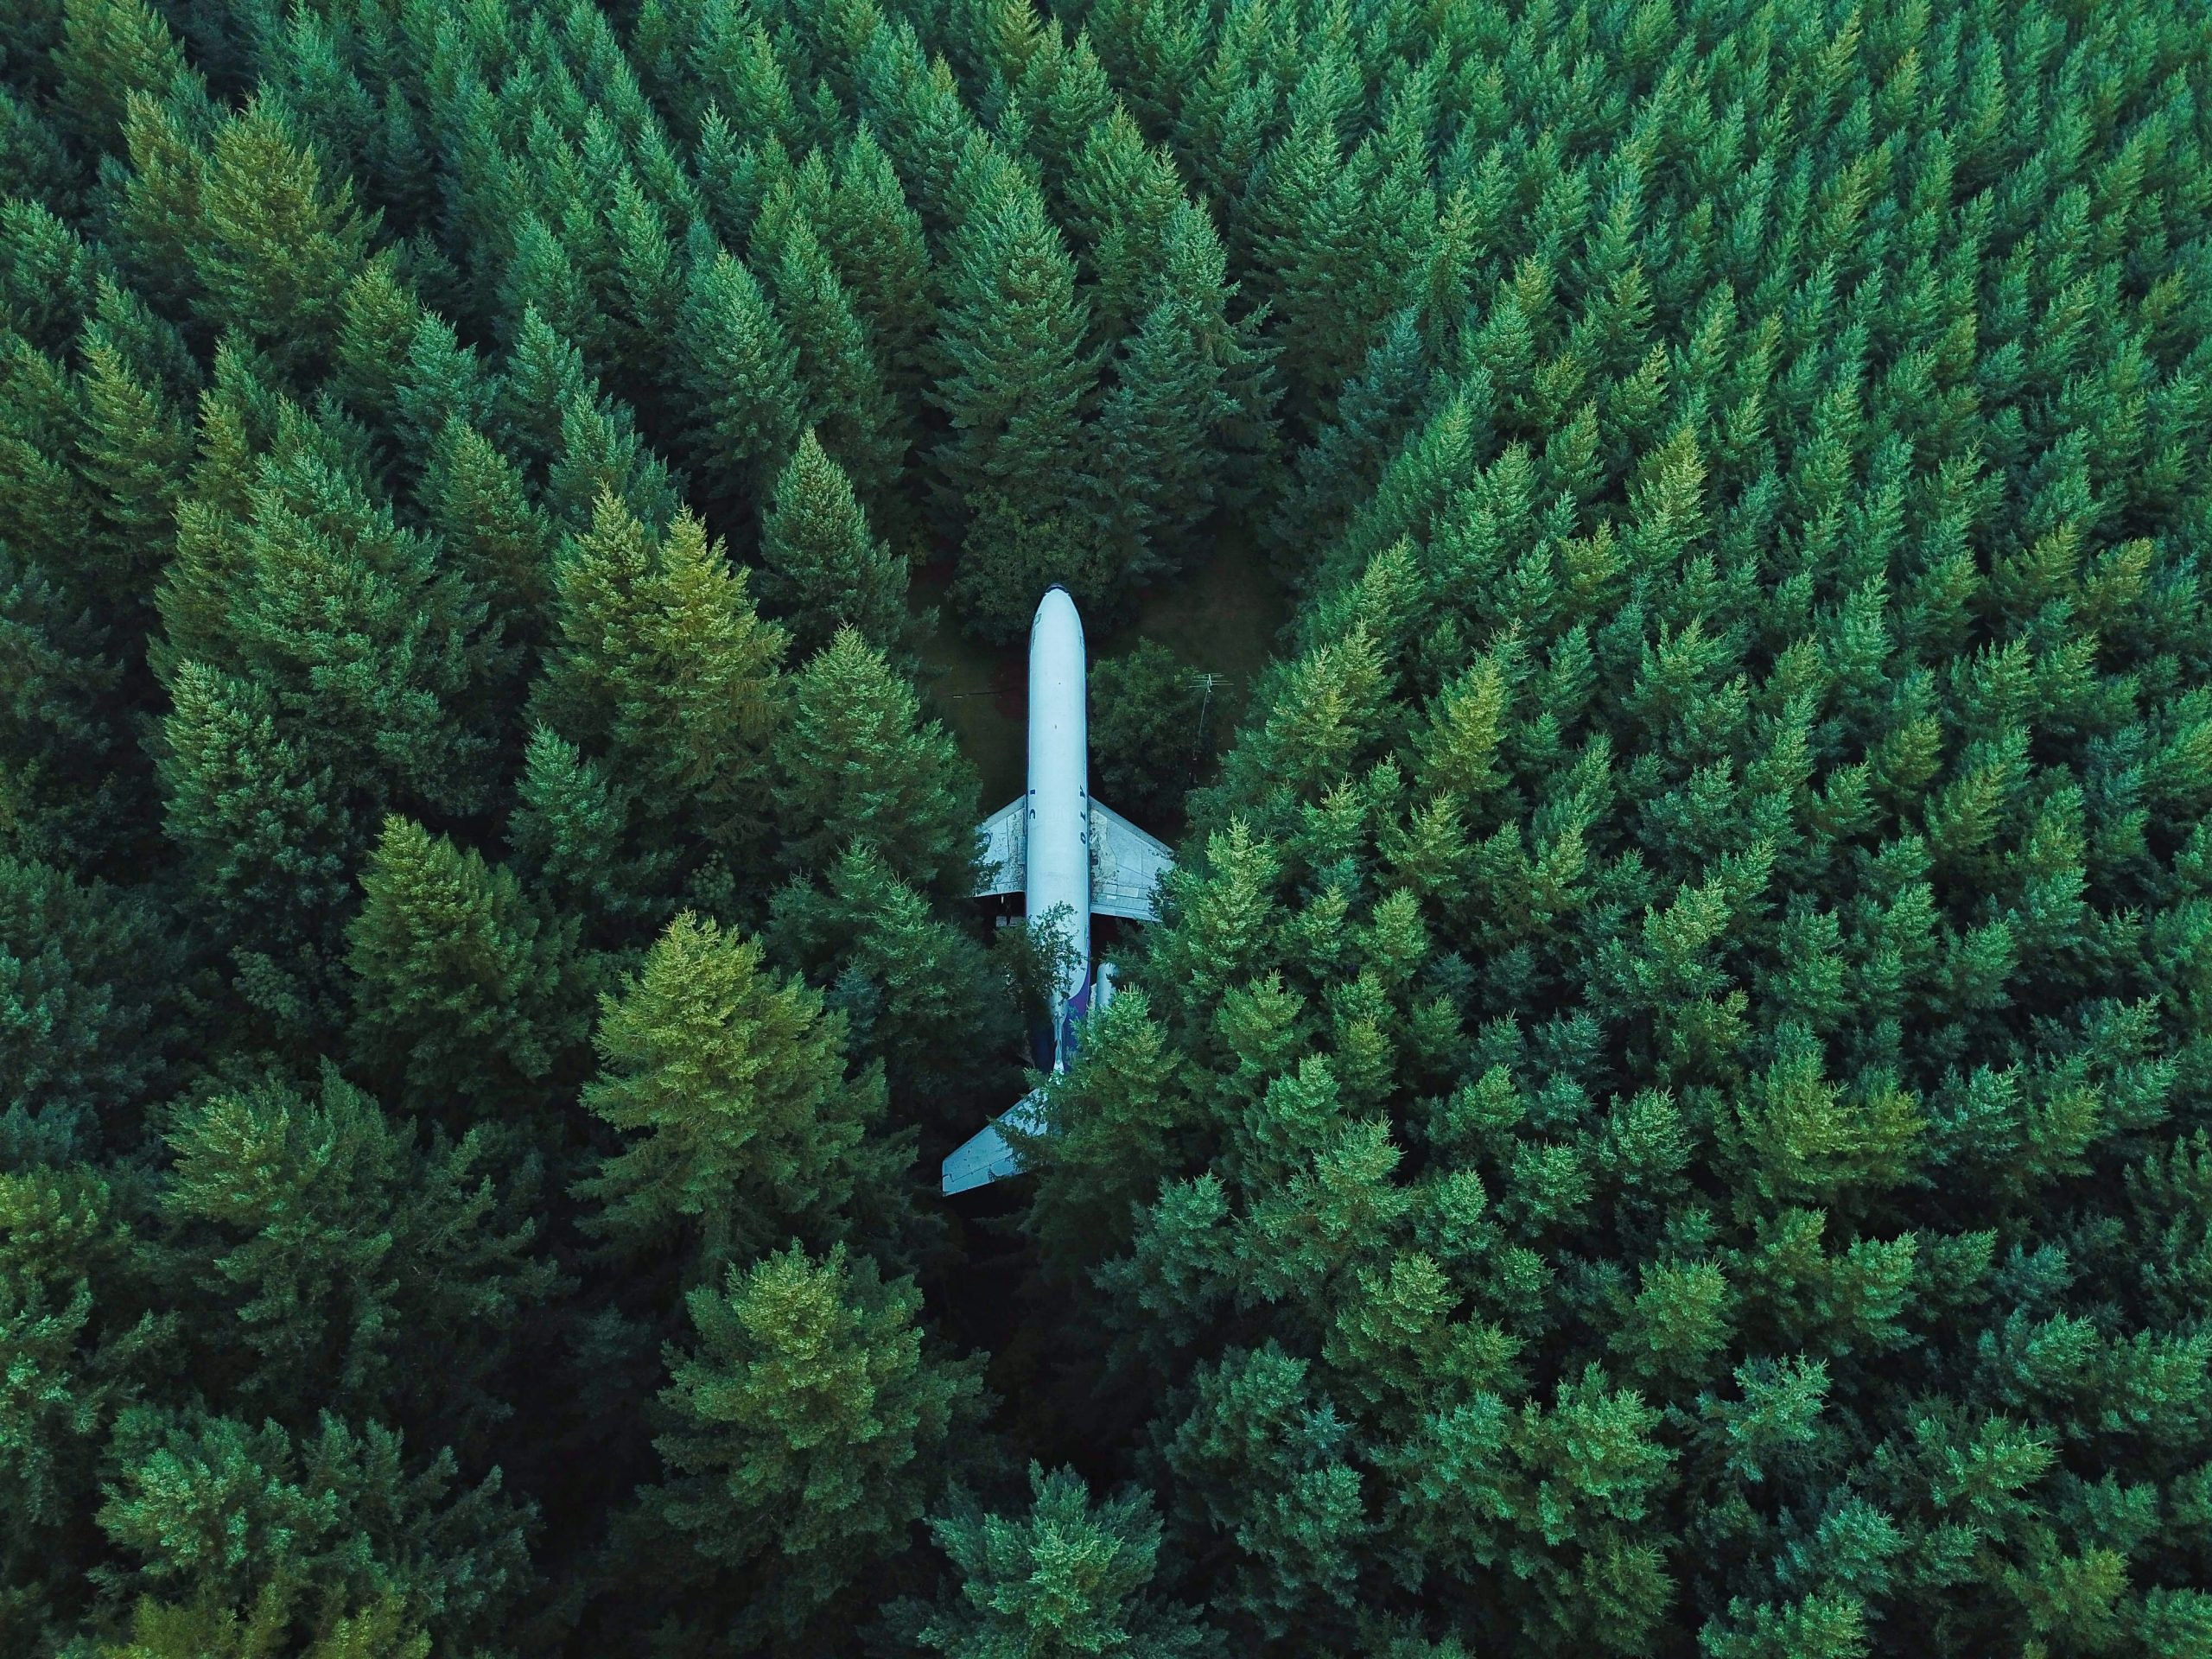 Airplane flight free green pr company environmental pr forest